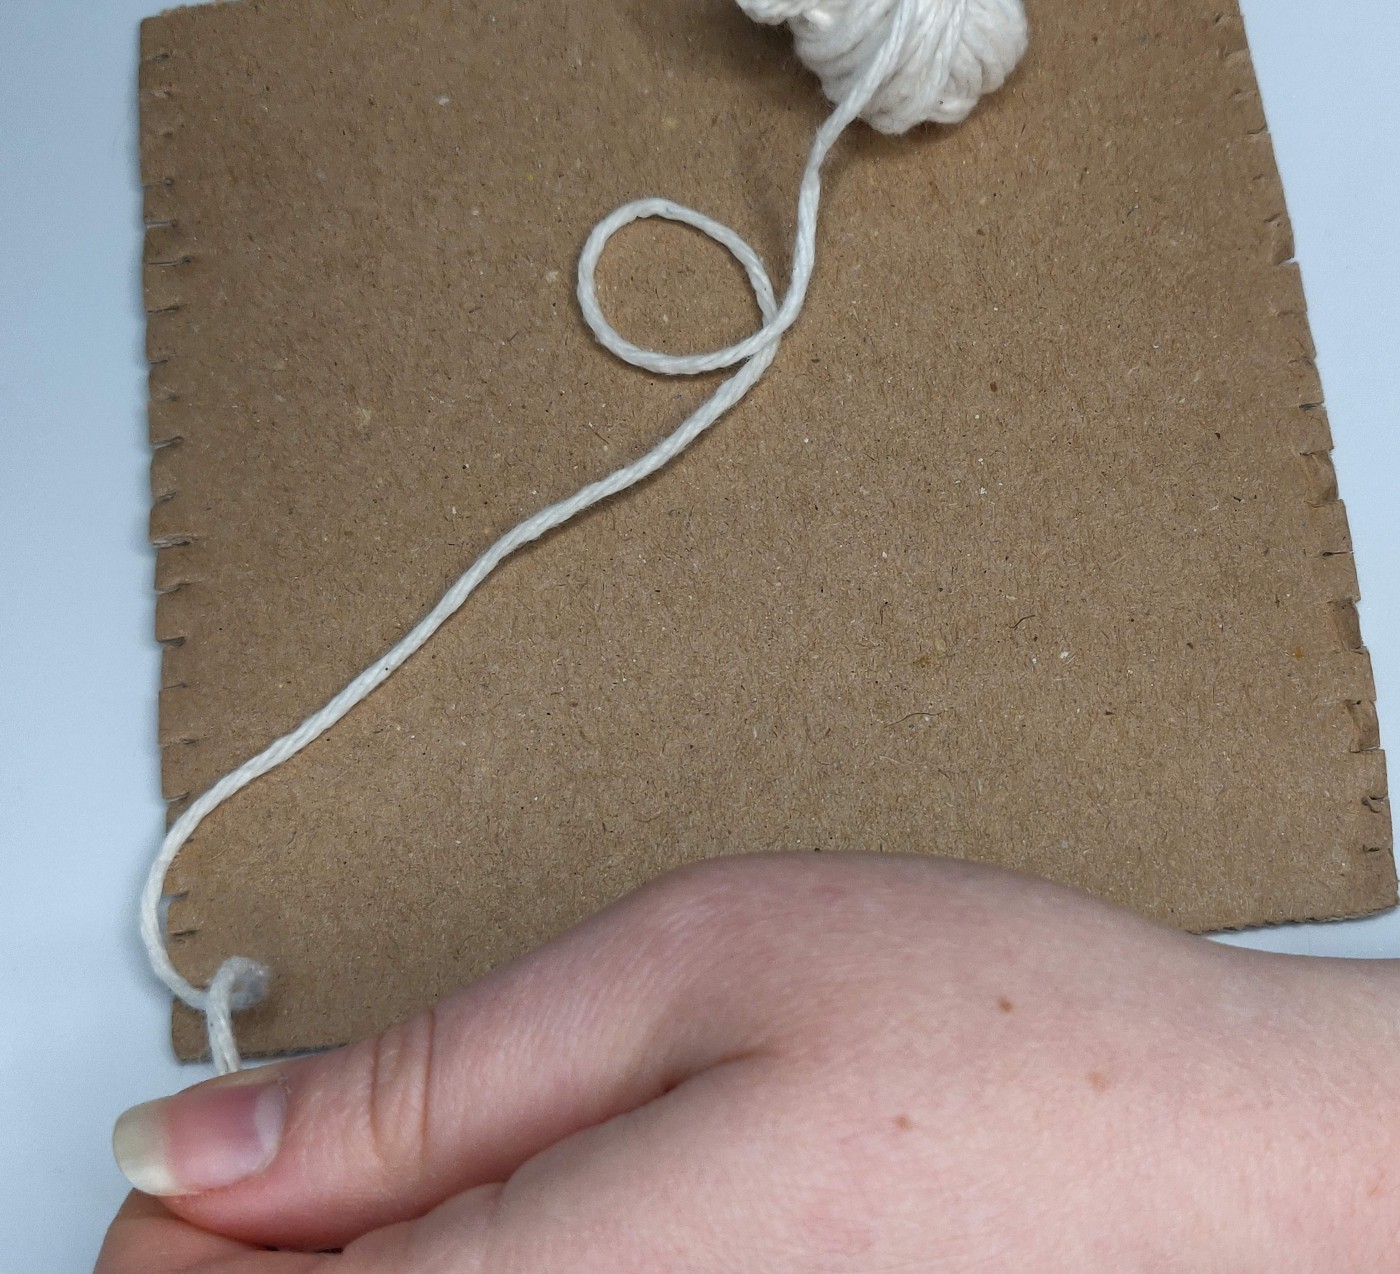 A simple cardboard loom with a small ball of yarn sitting on top, and a hand ready to begin warping the loom